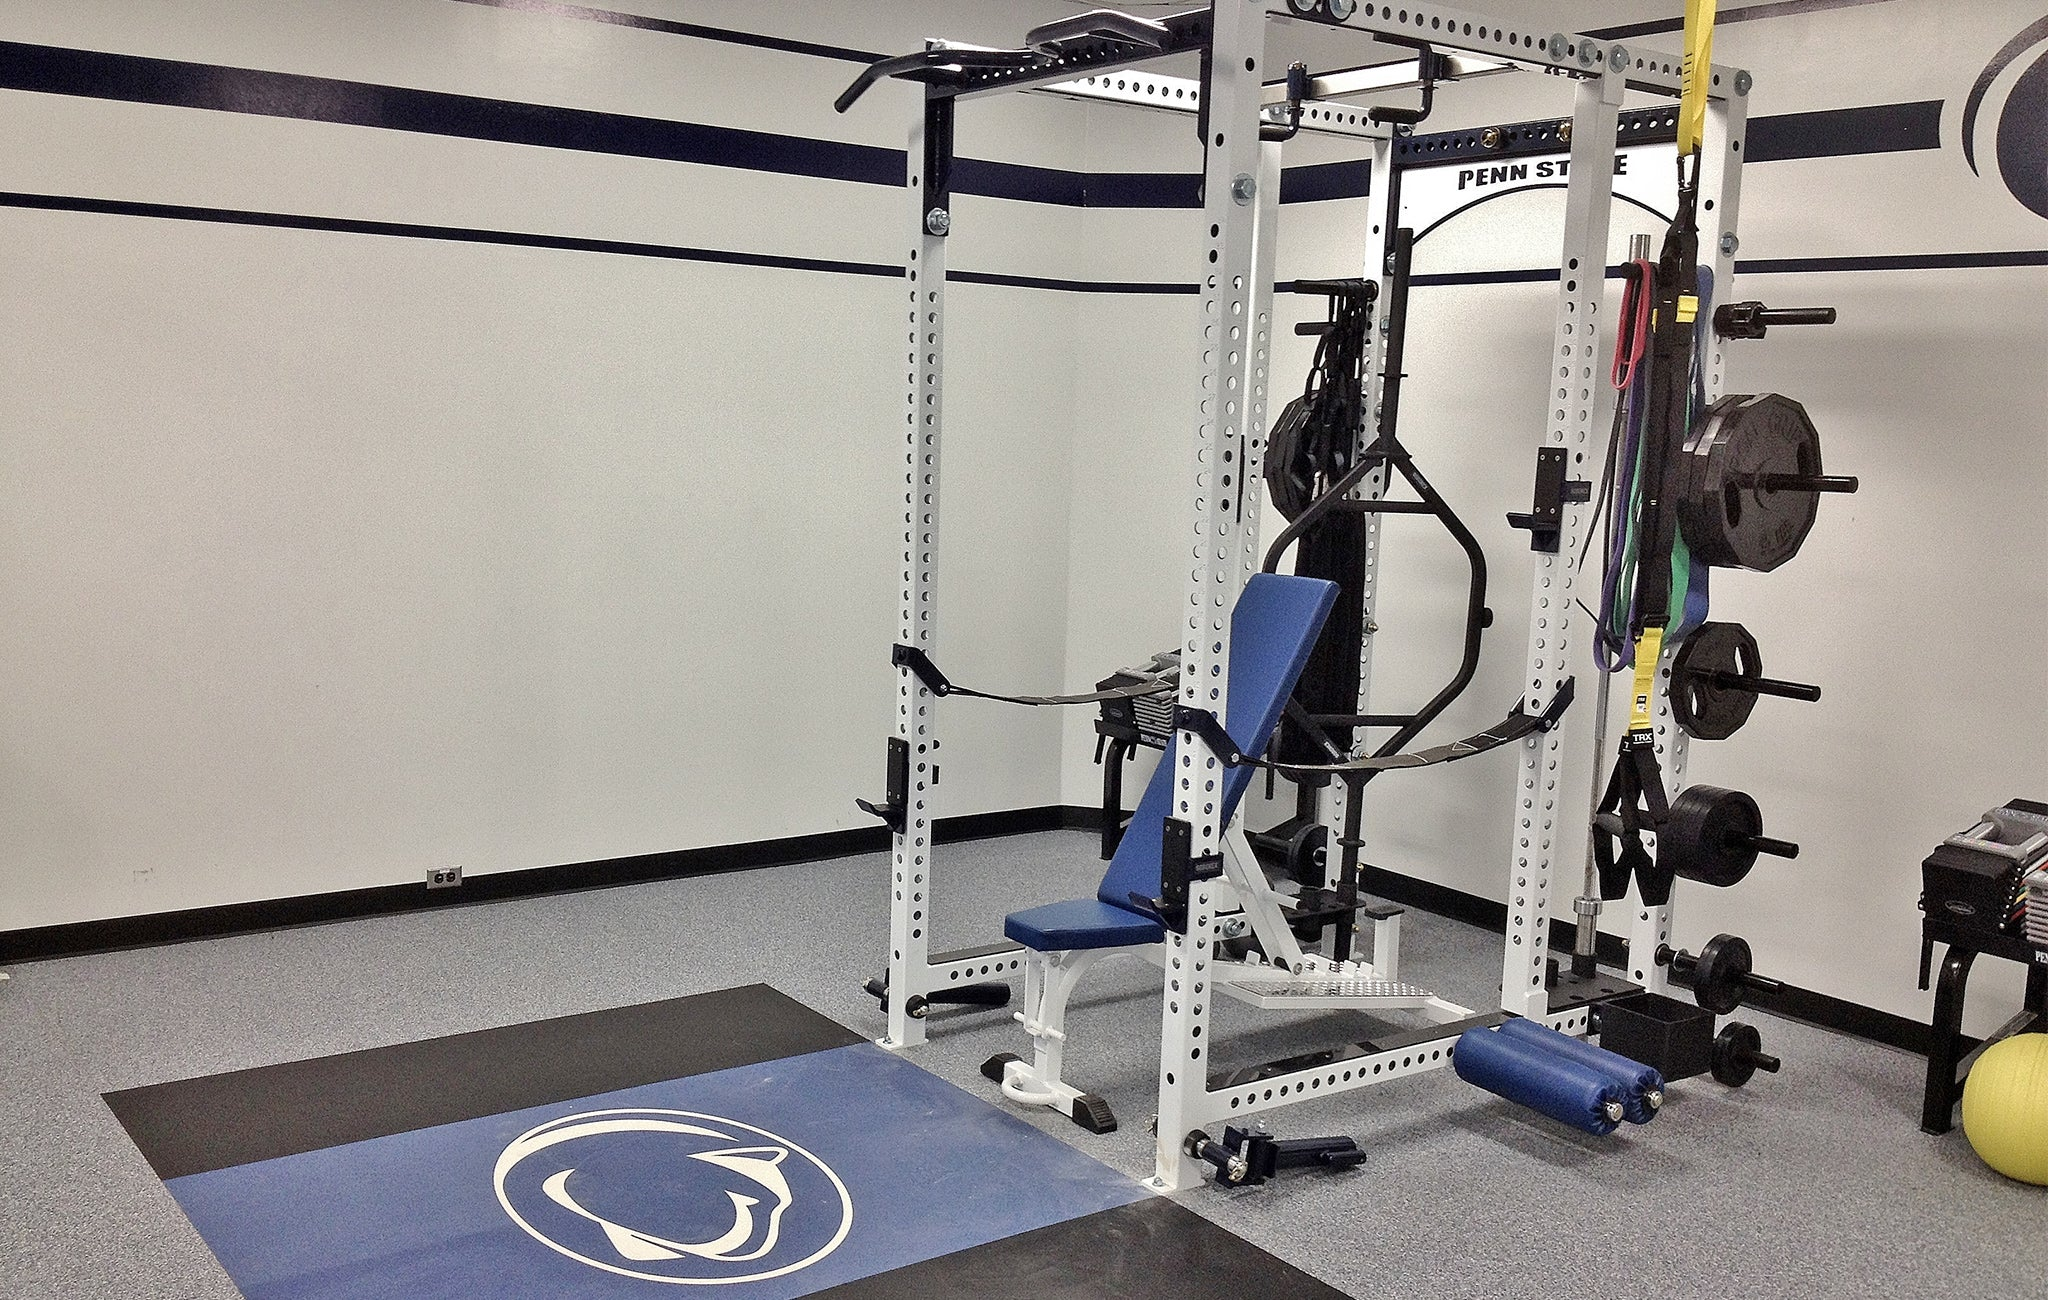 Penn State Wrestling strength and conditioning